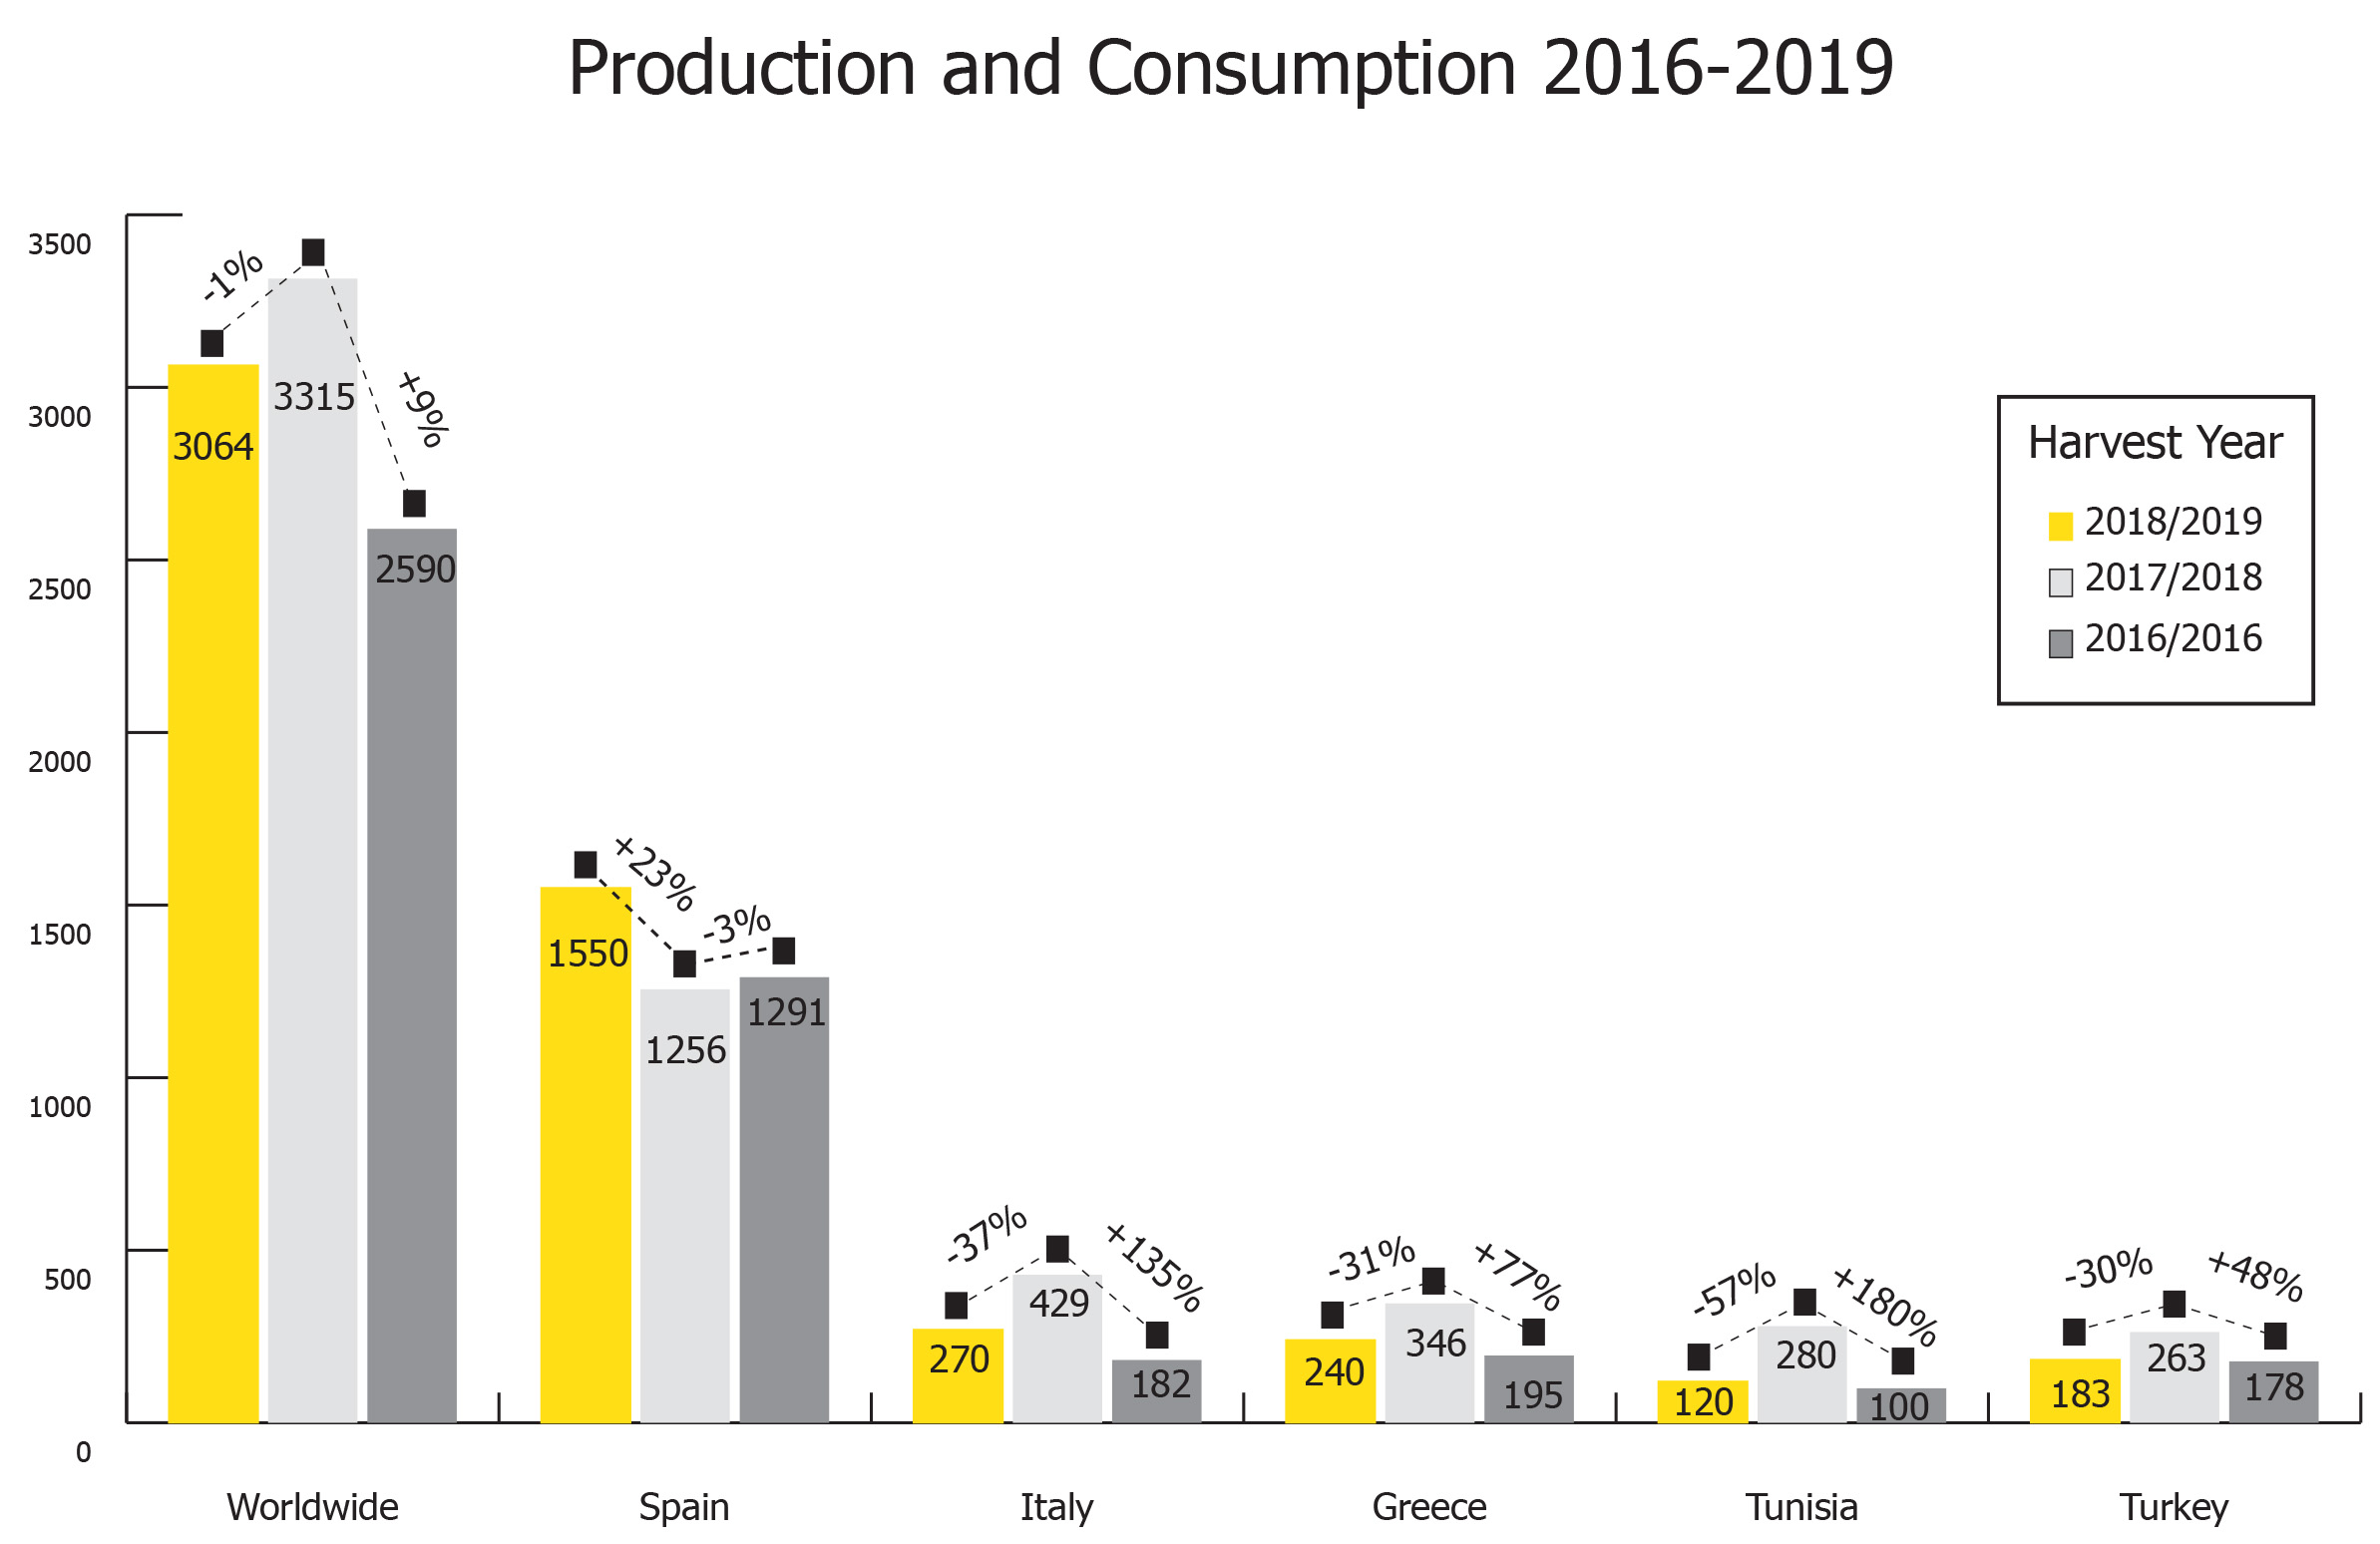 olive oil production and consumption 2016-2019